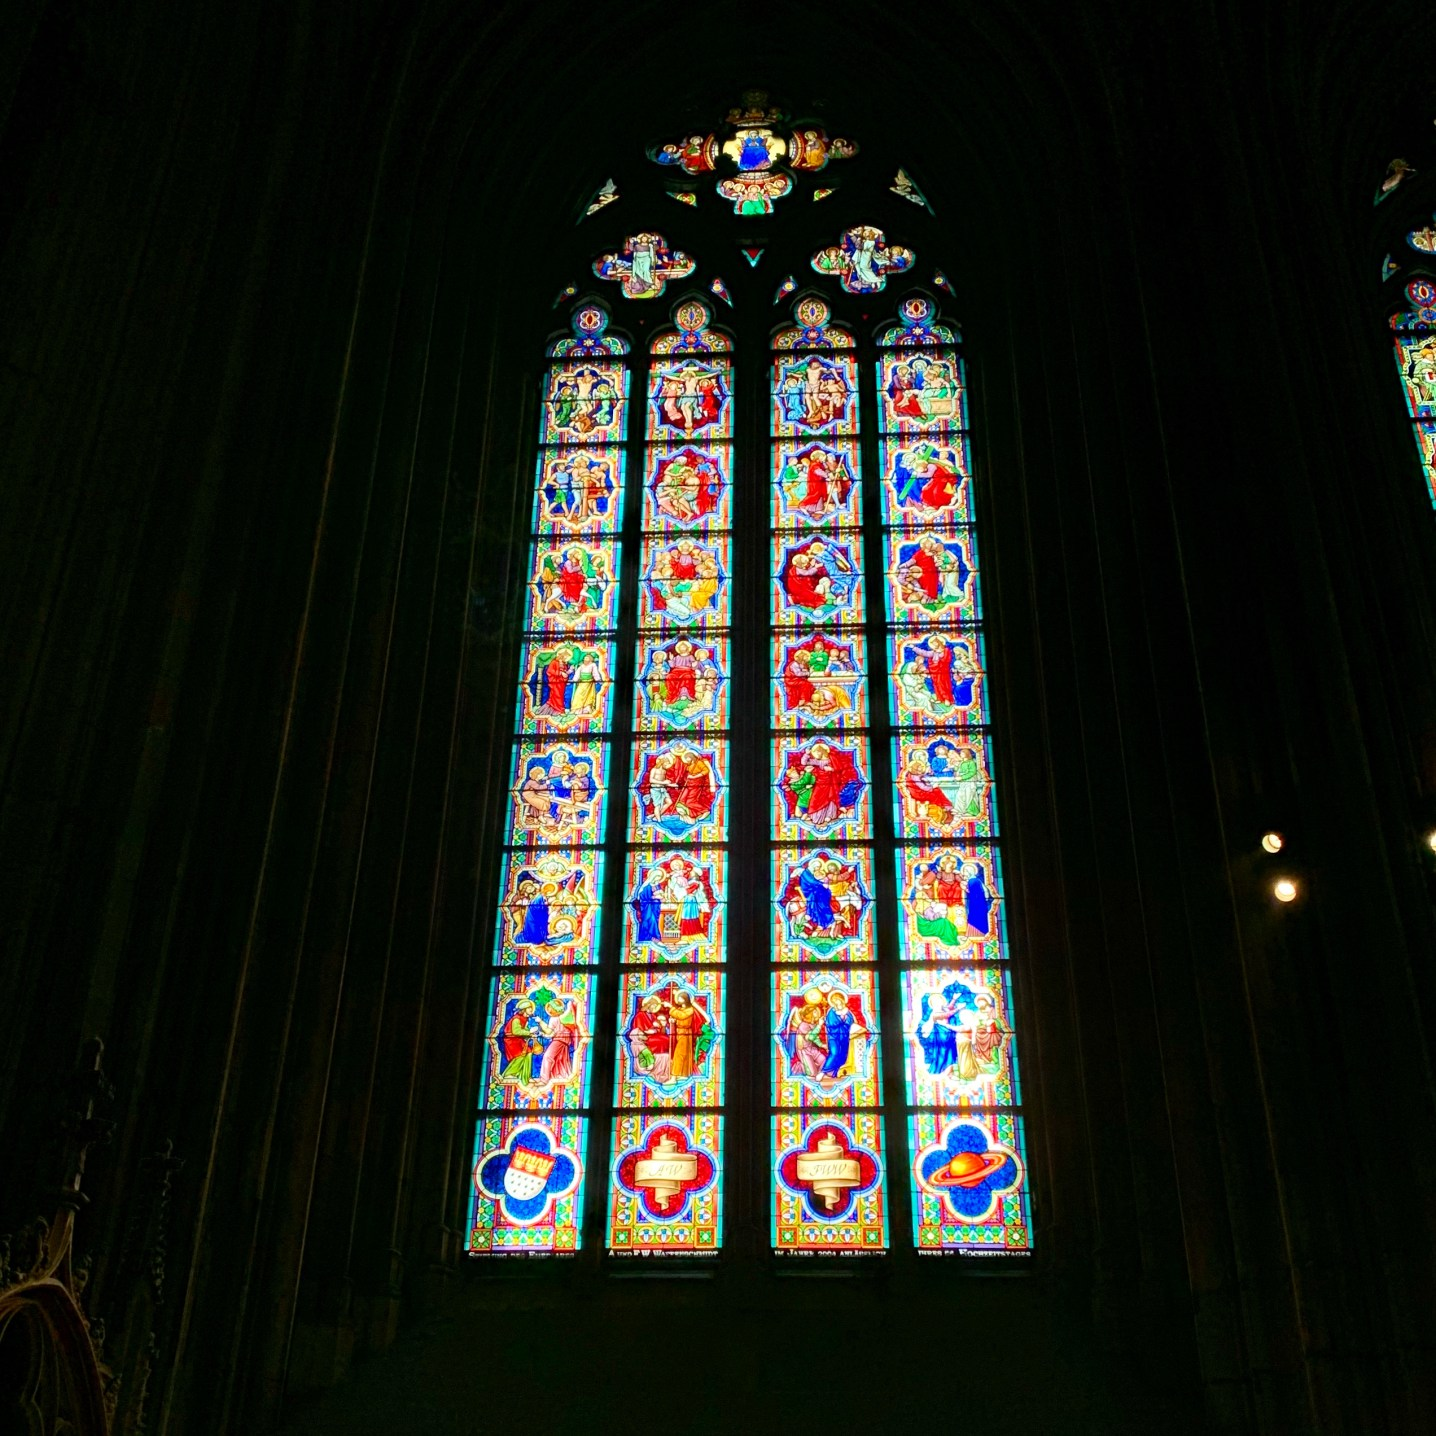 Stain glass windows from the inside